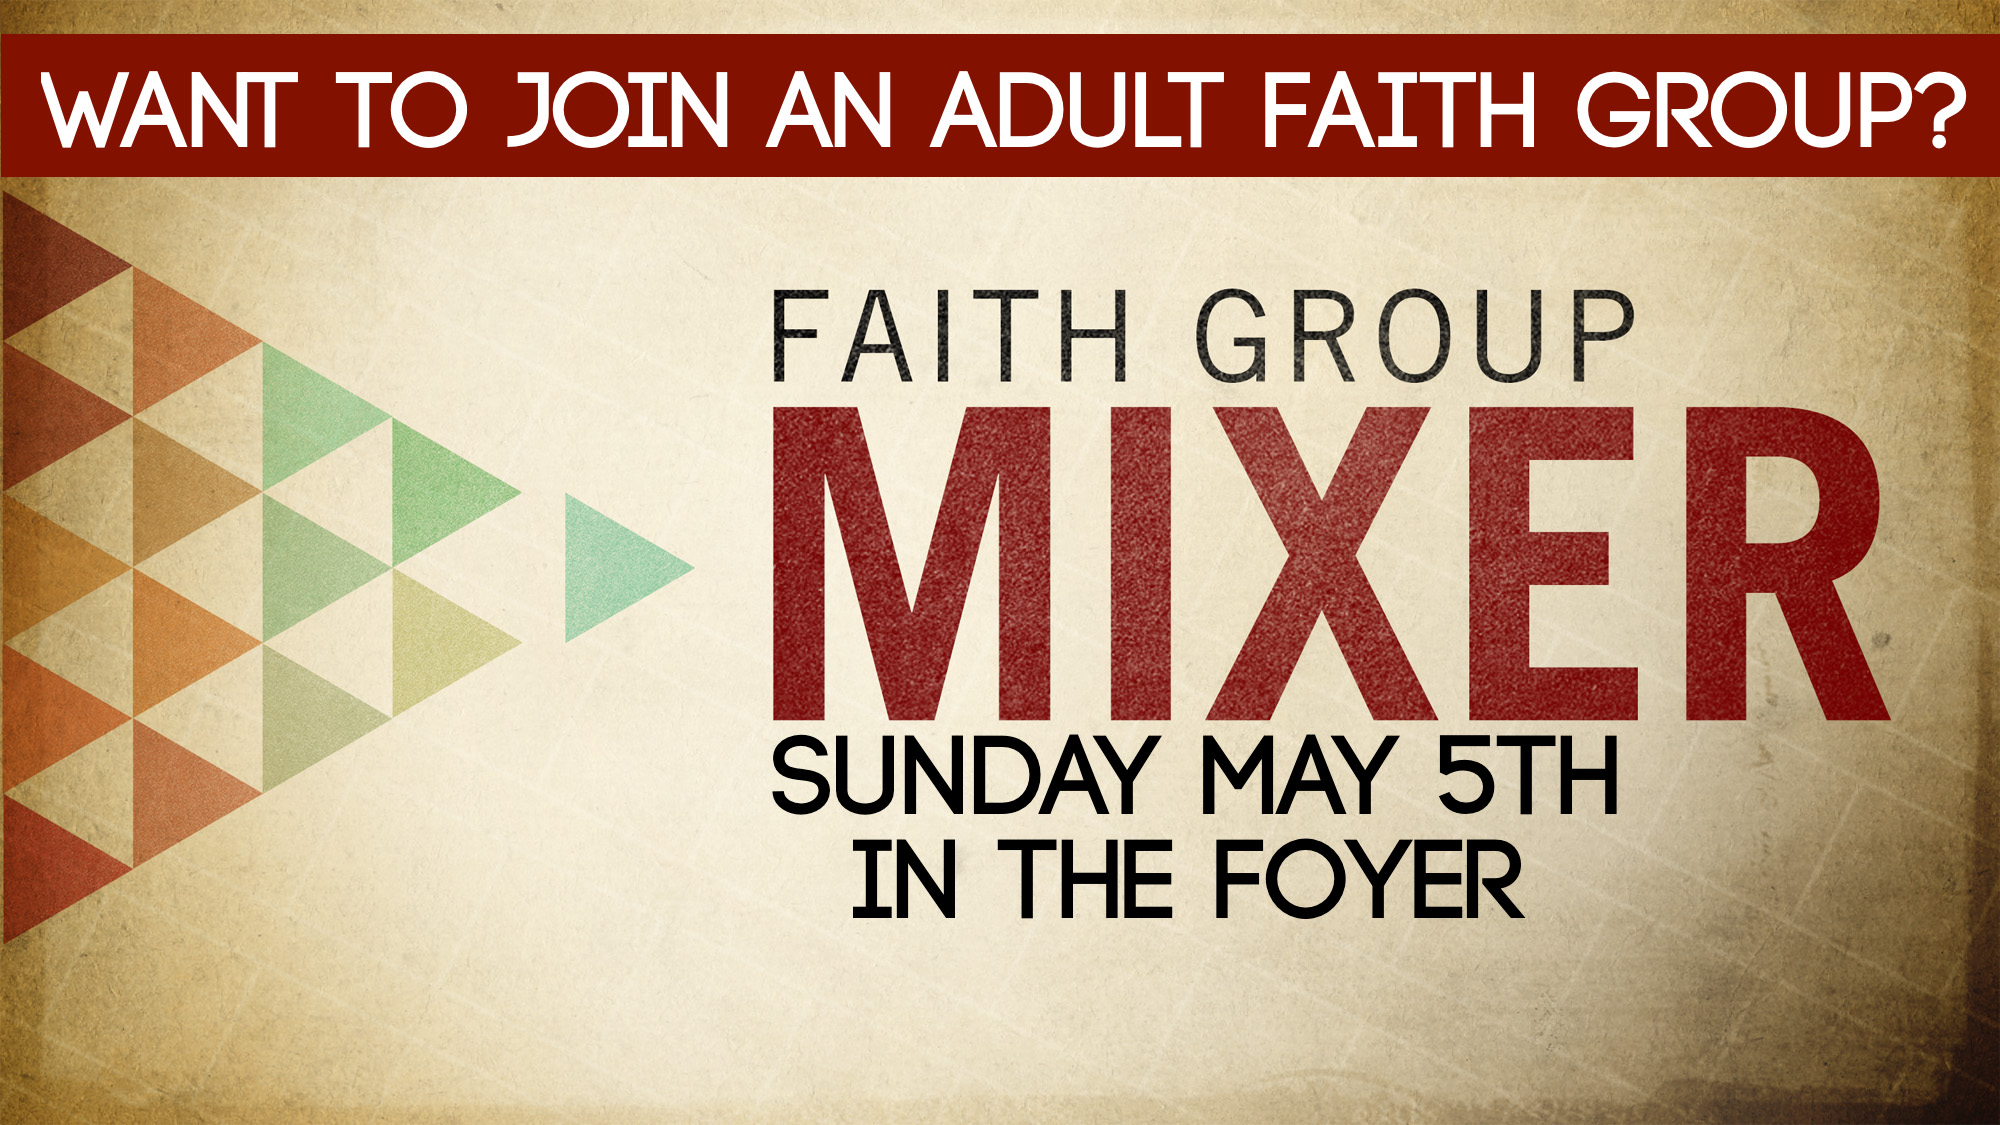 Want to join an adult faith group?  Come to the faith group mixer in our foyer on Sunday May 5th to learn more.